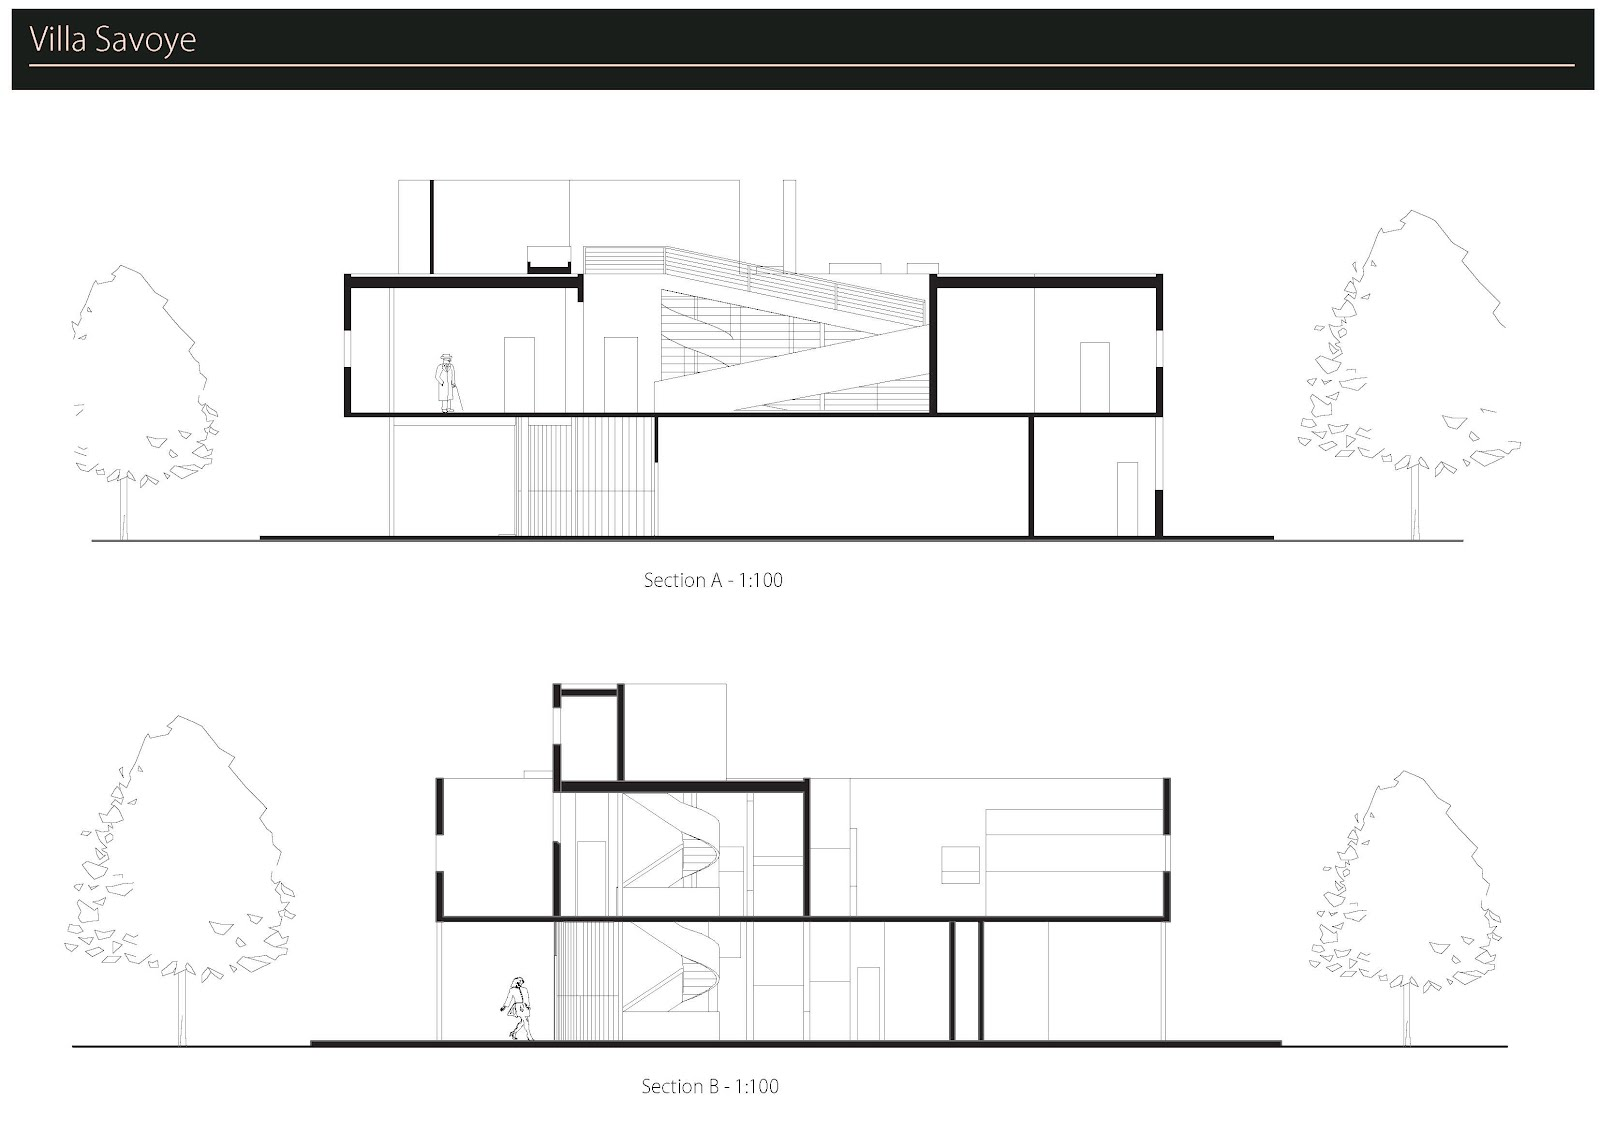 Arch1201 Villa Savoye Draft Drawings on Plan Section Elevation Drawings